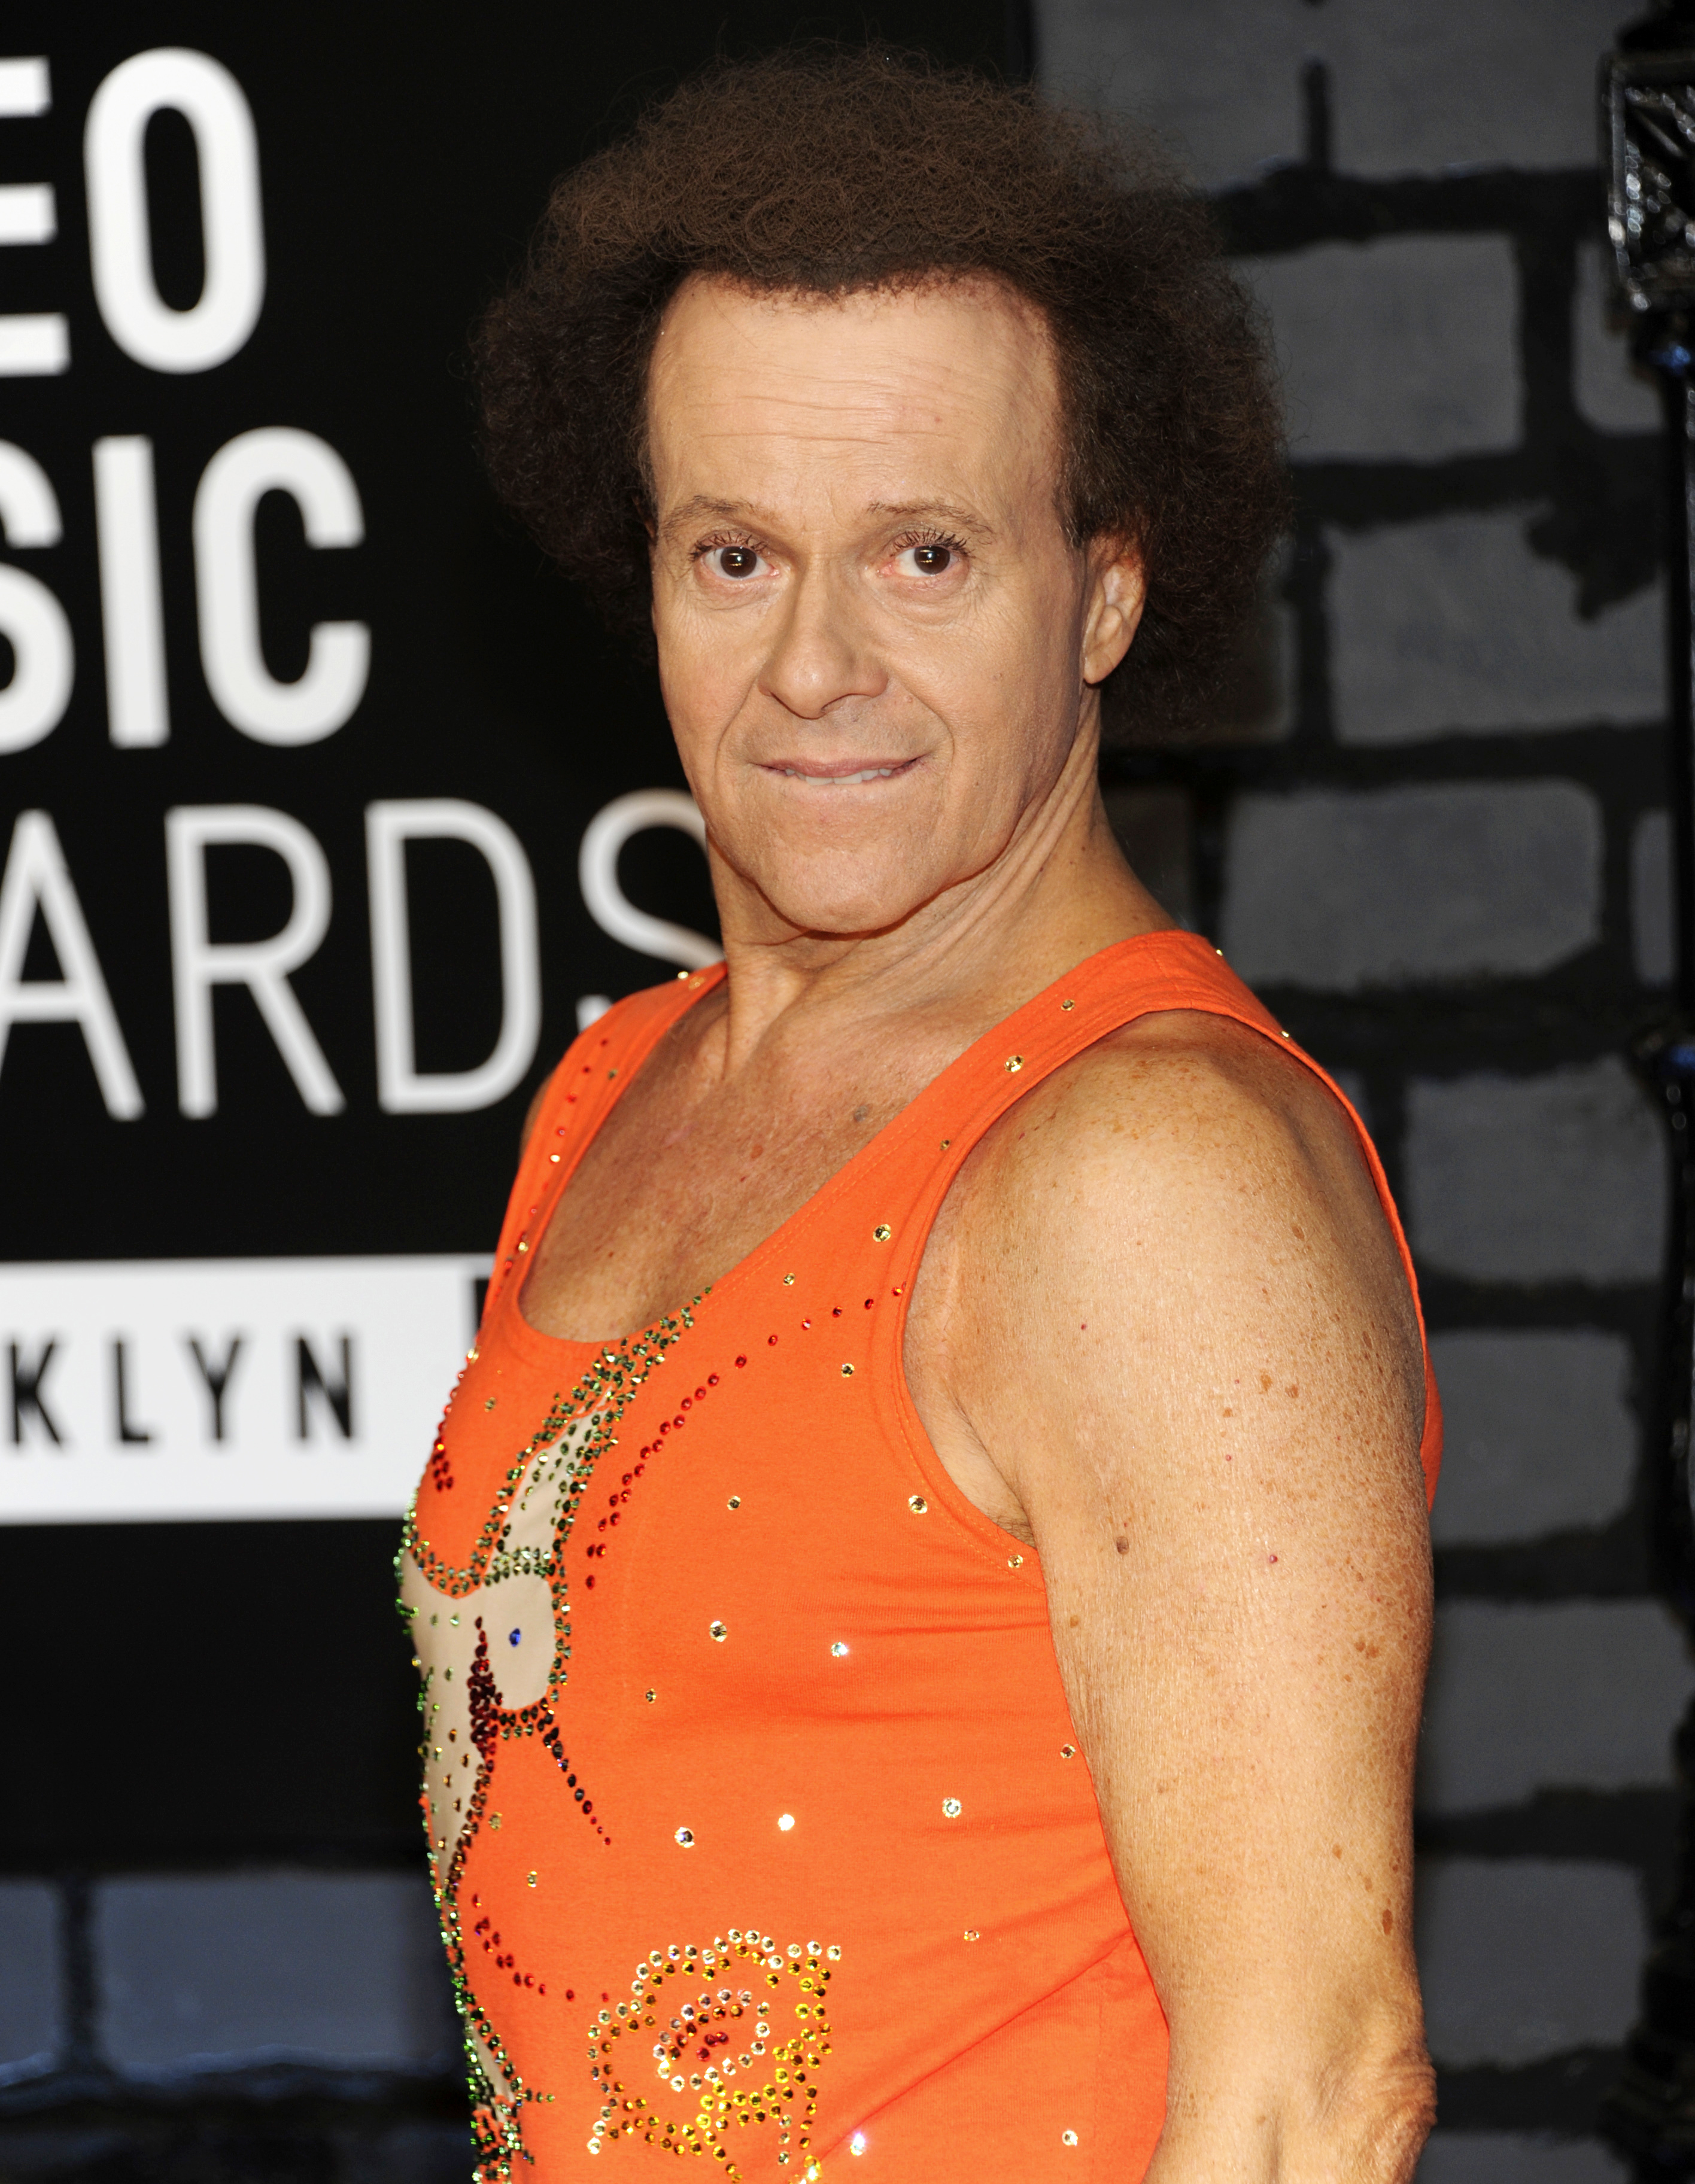 In this Aug. 25, 2013 file photo, Richard Simmons arrives at the MTV Video Music Awards in the Brooklyn borough of New York.